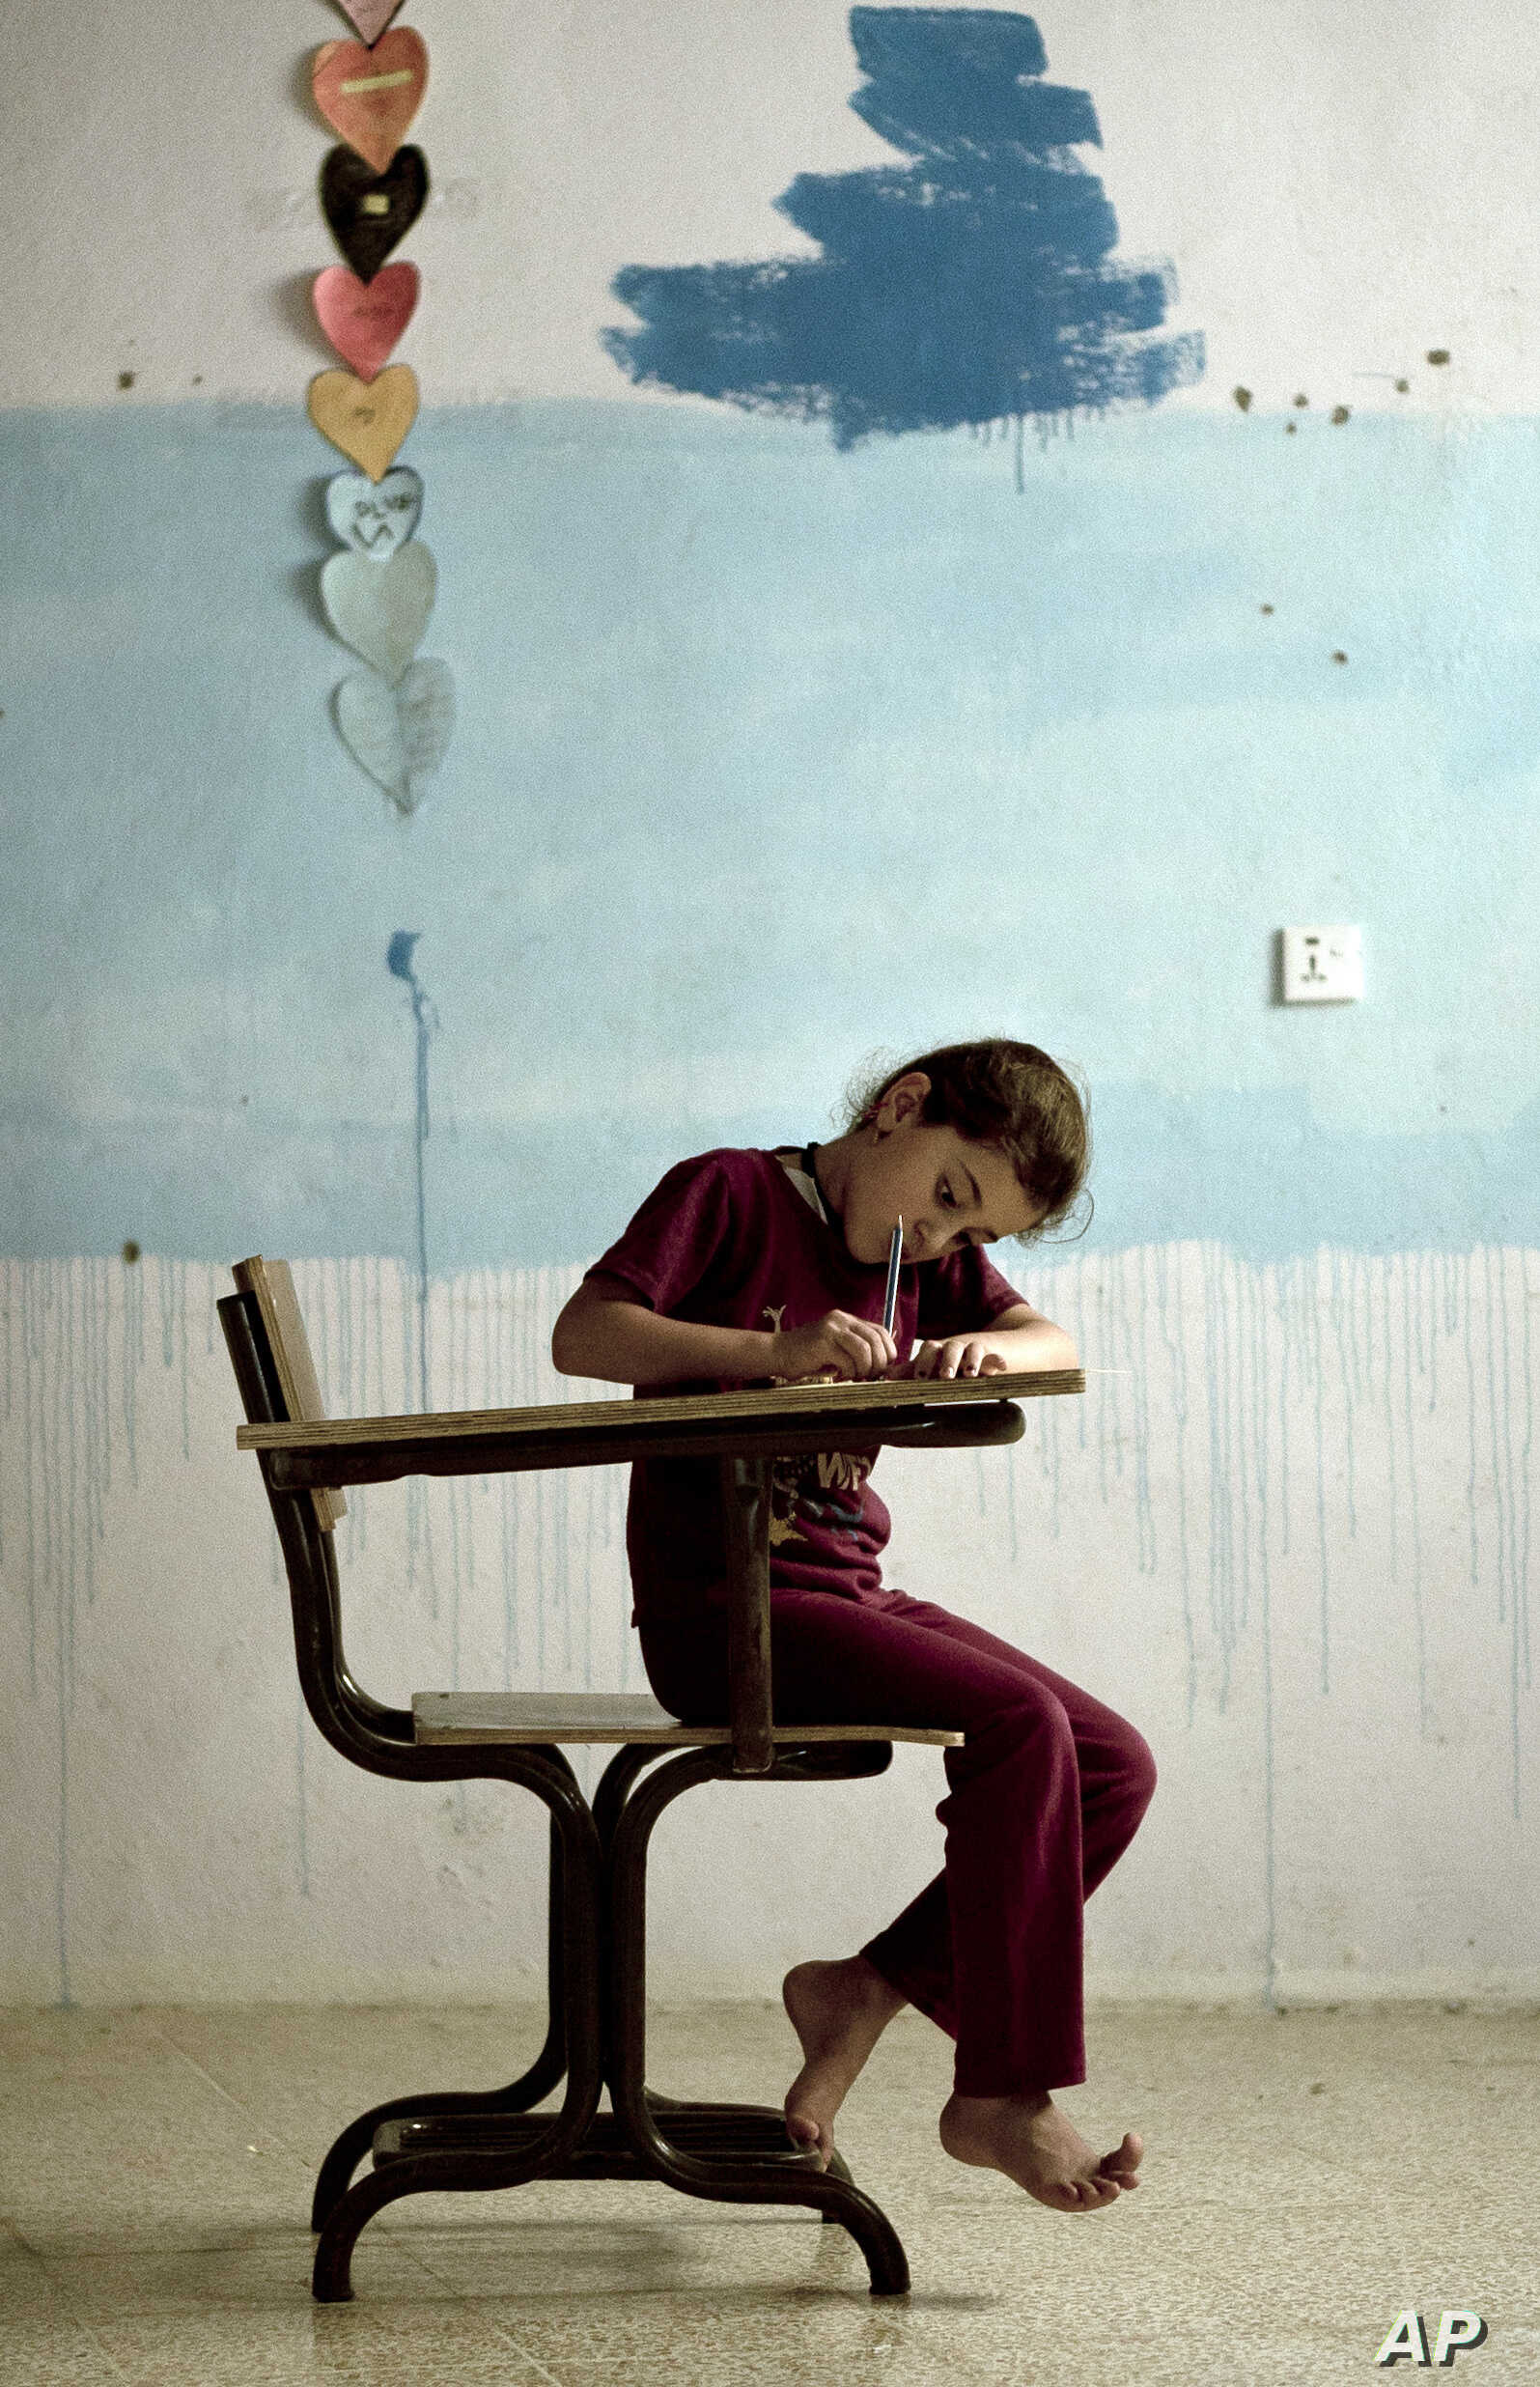 In this Aug. 22, 2018 photo, an orphaned Yazidi girl draws during arts and crafts time at an orphanage in Sheikhan, Iraq.